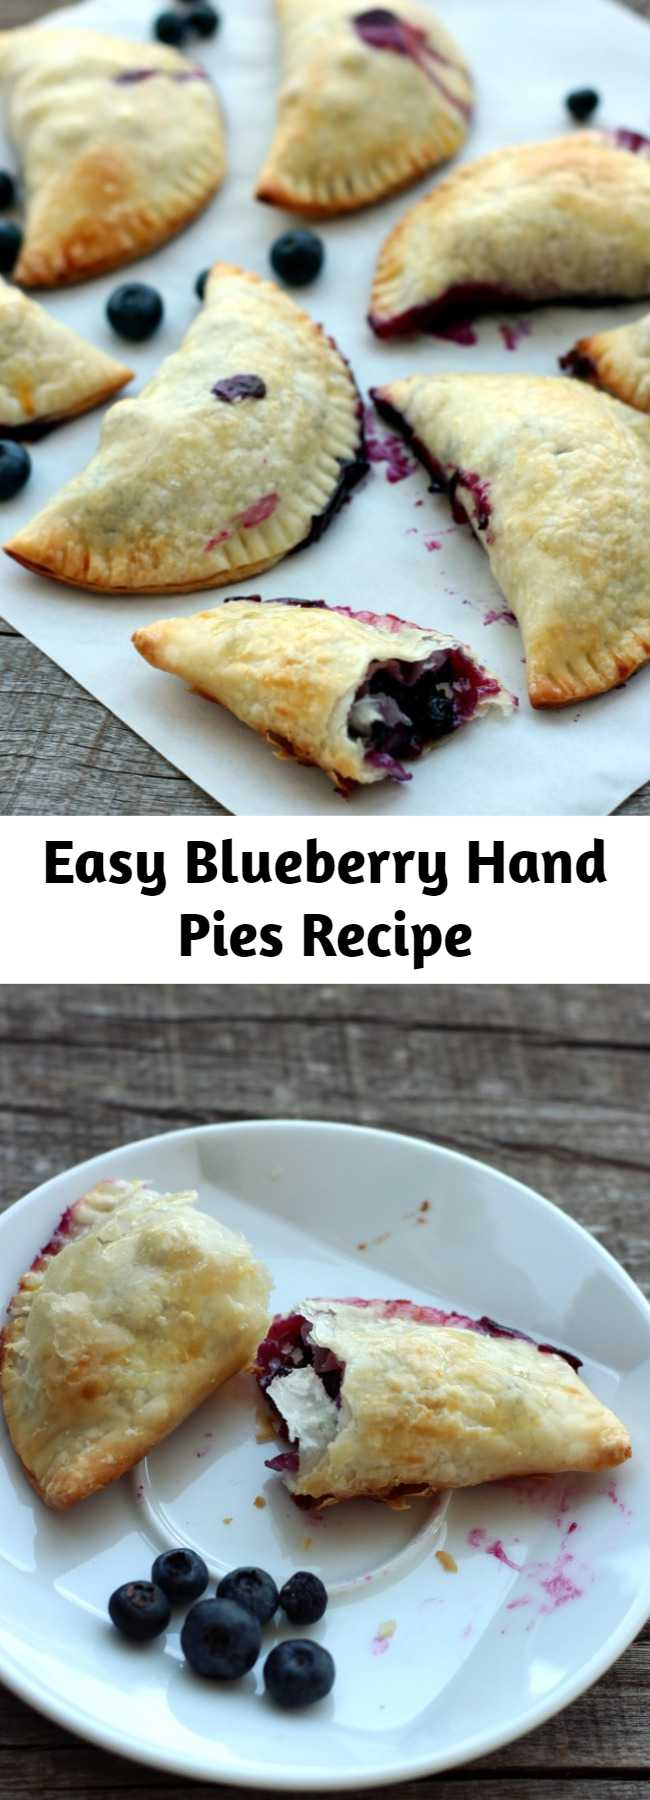 Easy Blueberry Hand Pies Recipe - A flaky, crispy crust on the outside and warm blueberries spilling with their juices inside – definitely a keeper and a quick fix for afternoon tea.